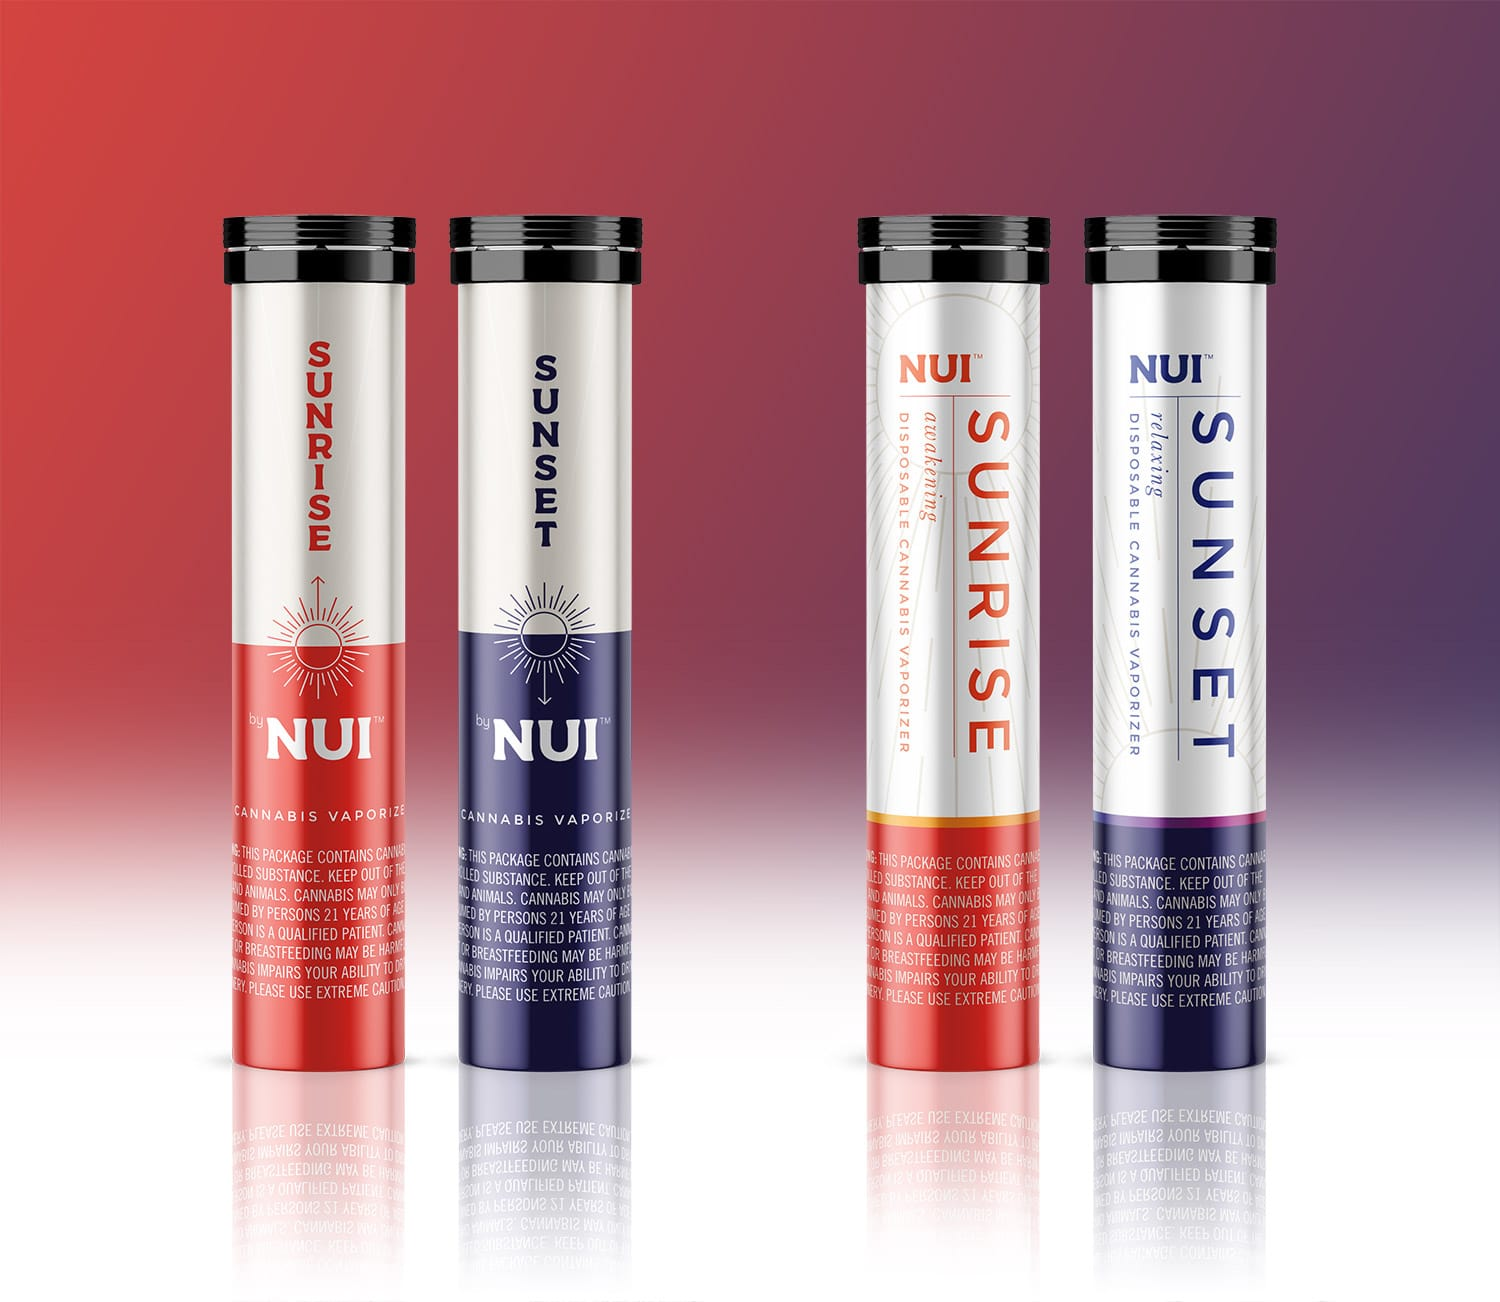 Nui simple & clean package design options